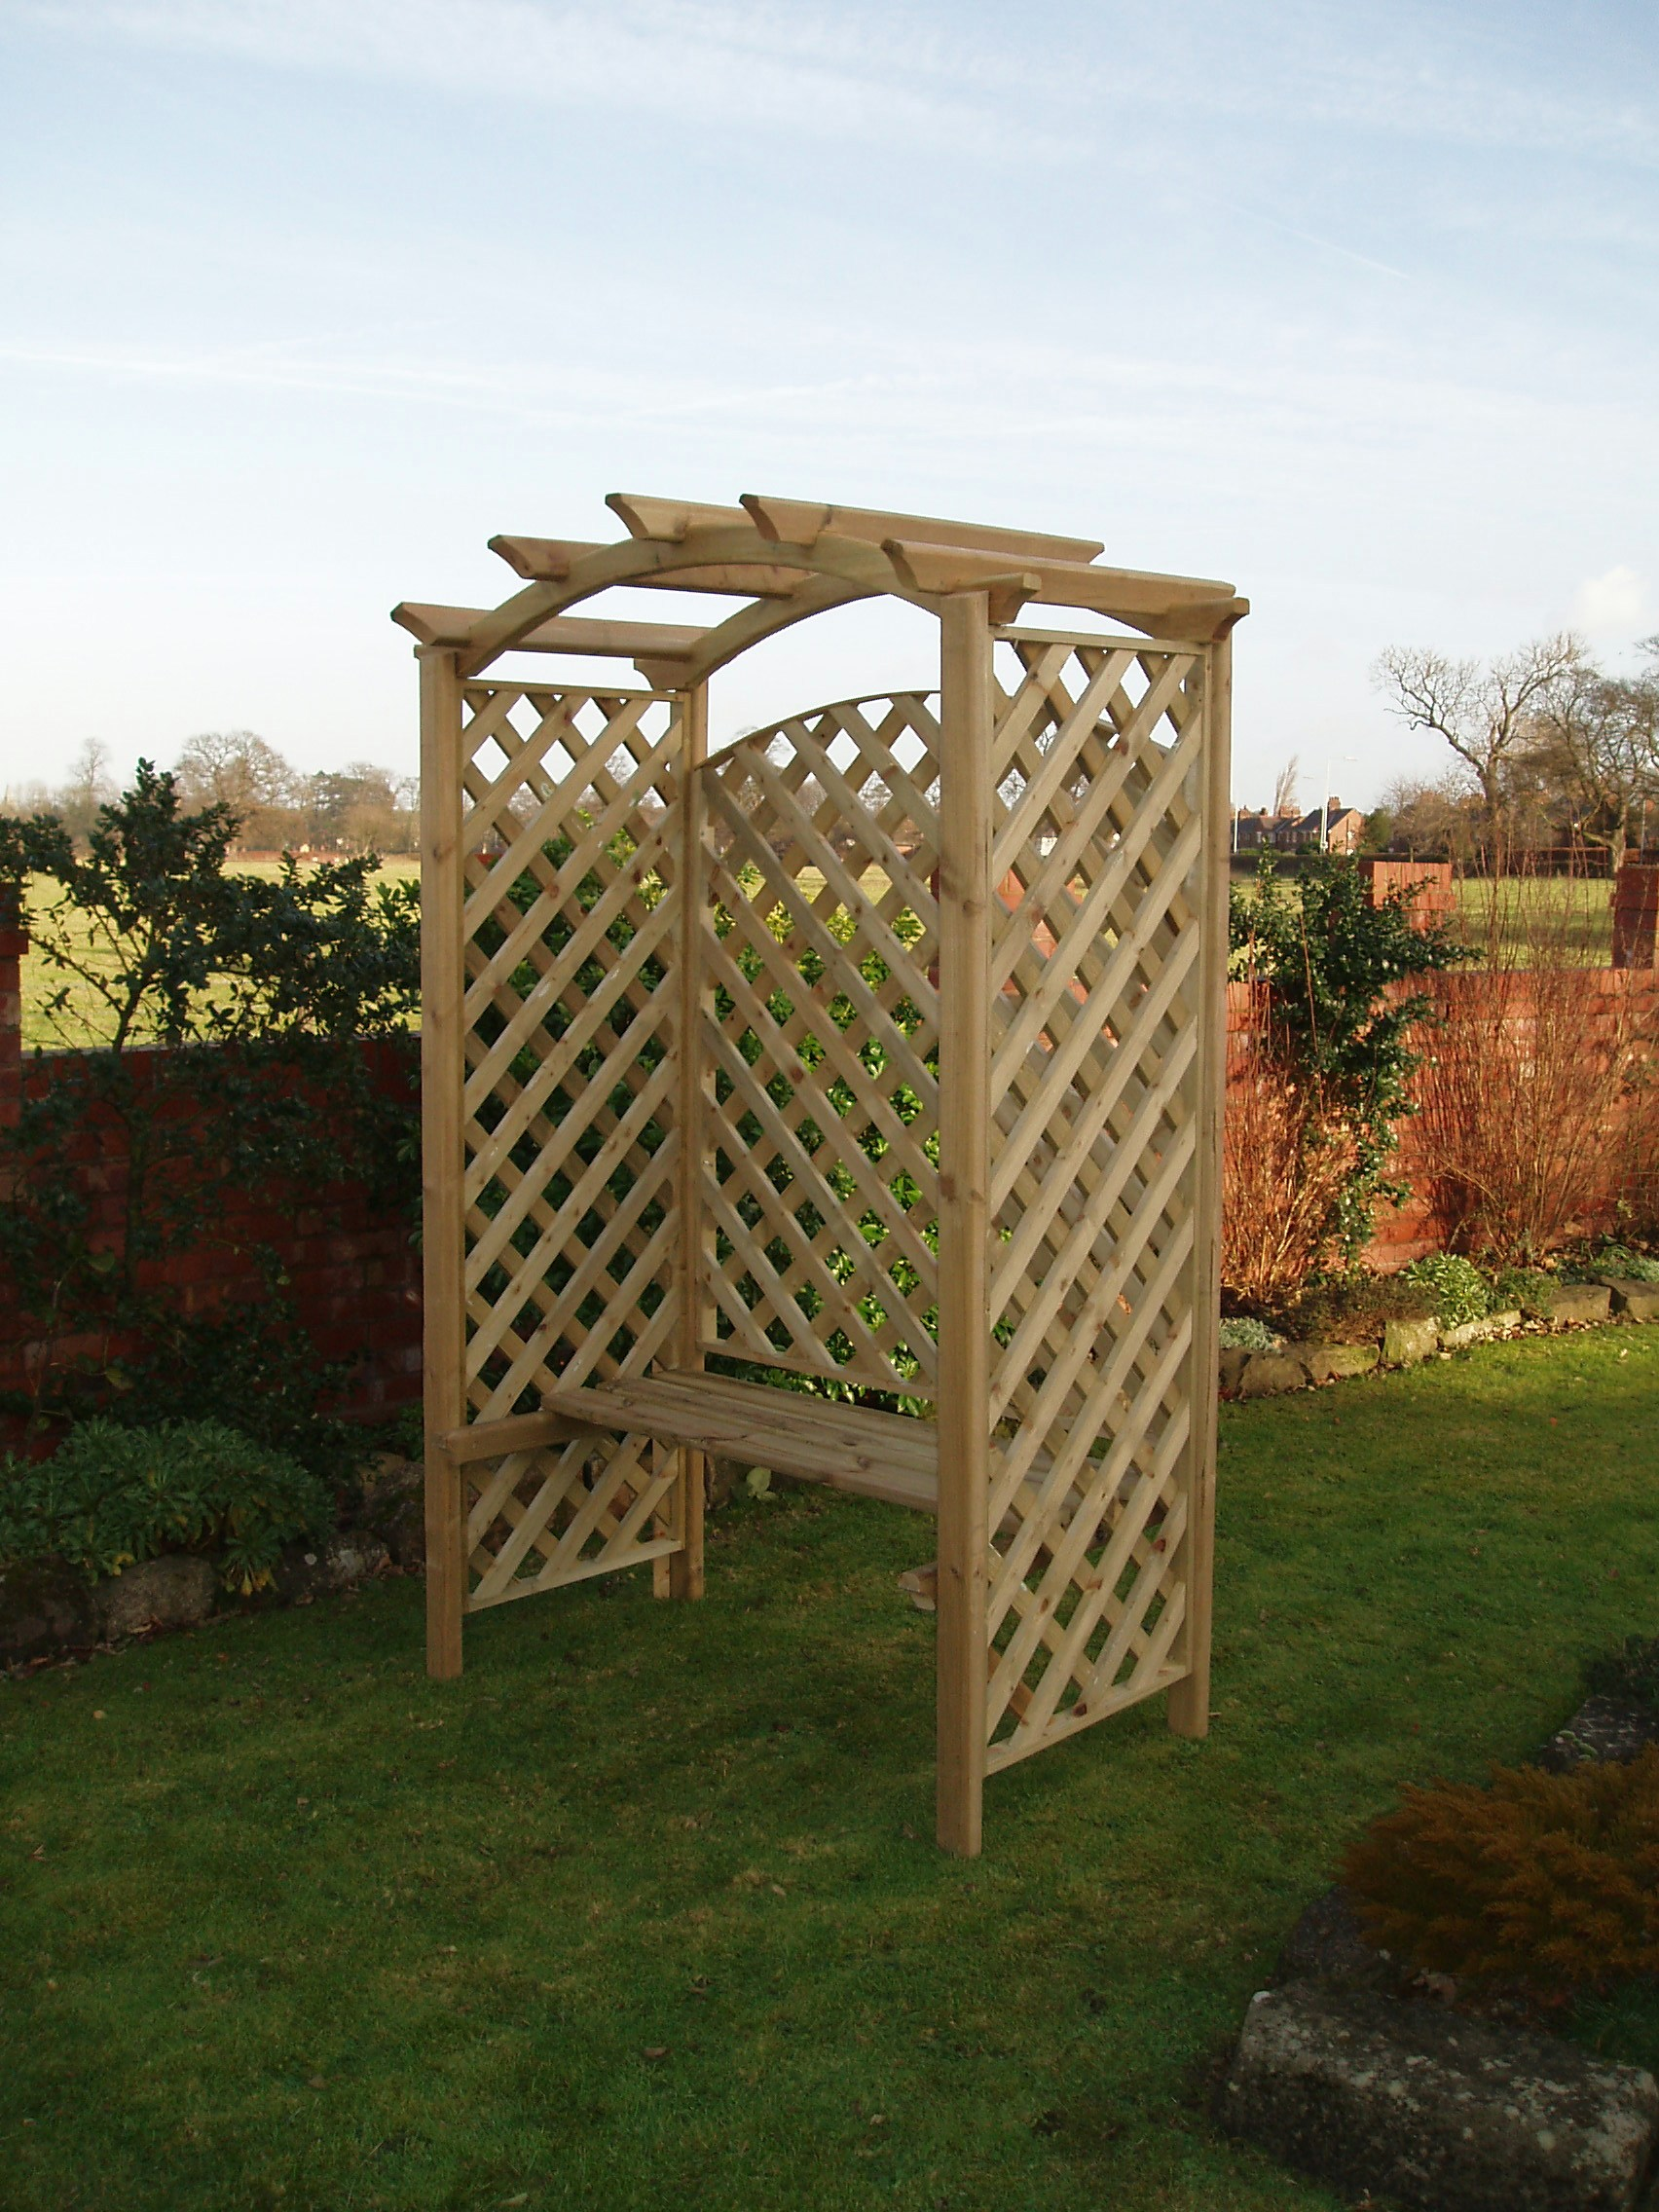 Rosewood seated arbour denbigh timber products for Rosewood garden designs